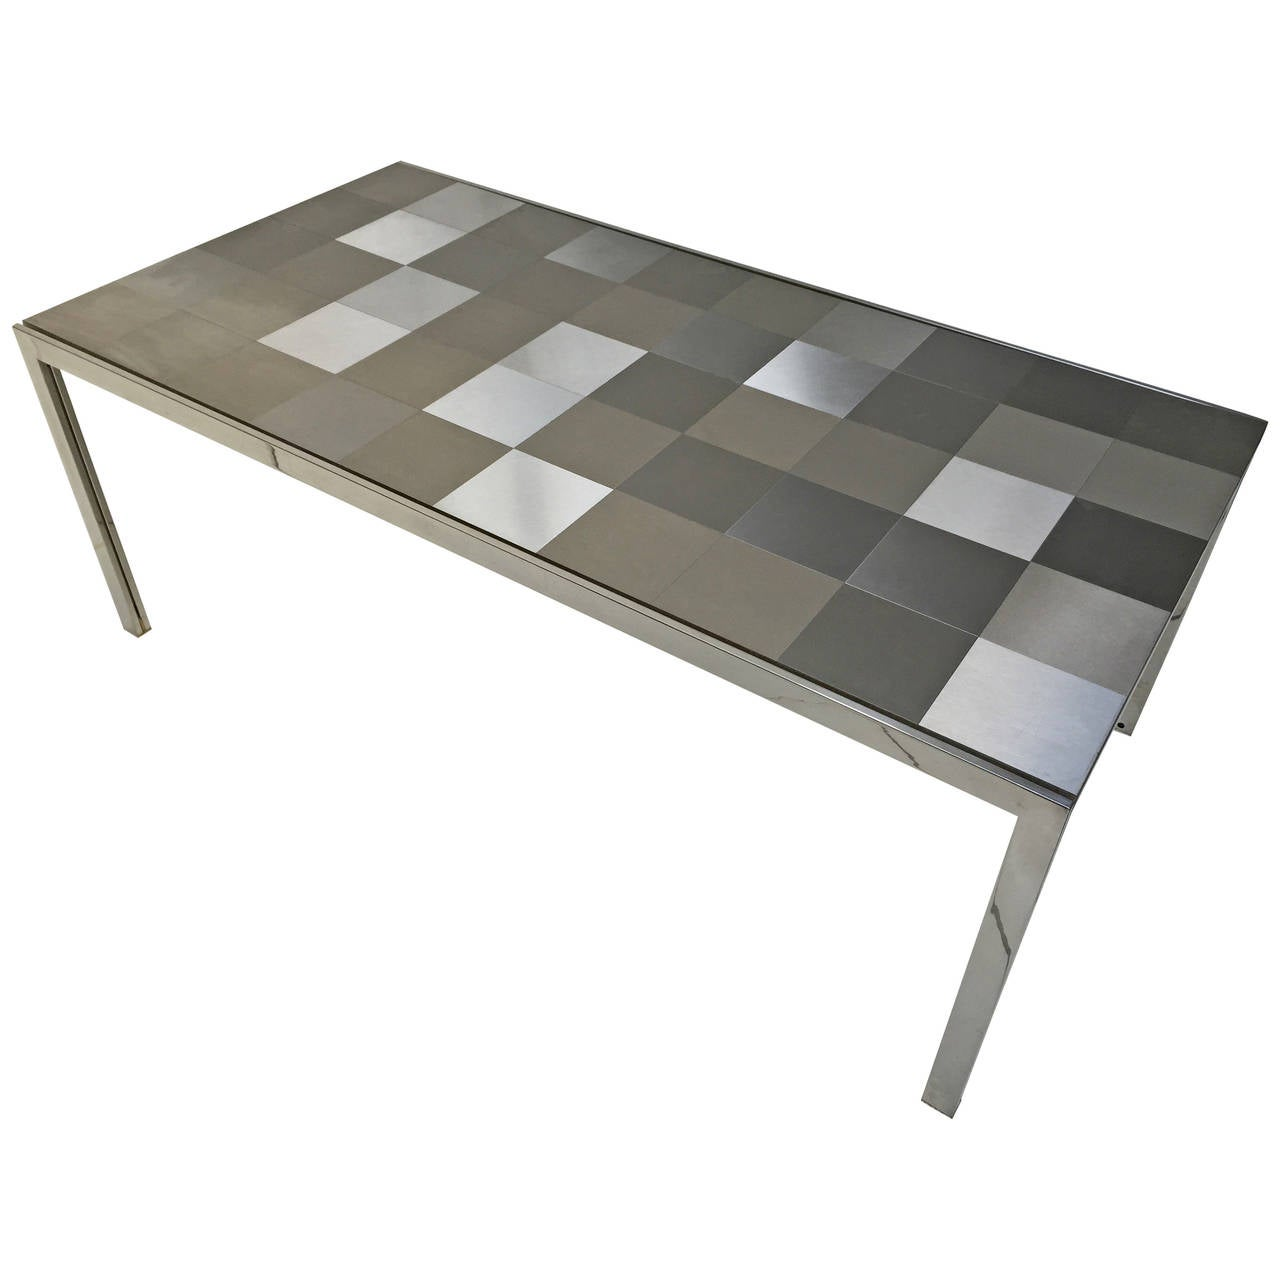 Stainless steel 39 luar 39 op art dining table by ross littell for Stainless steel dining table